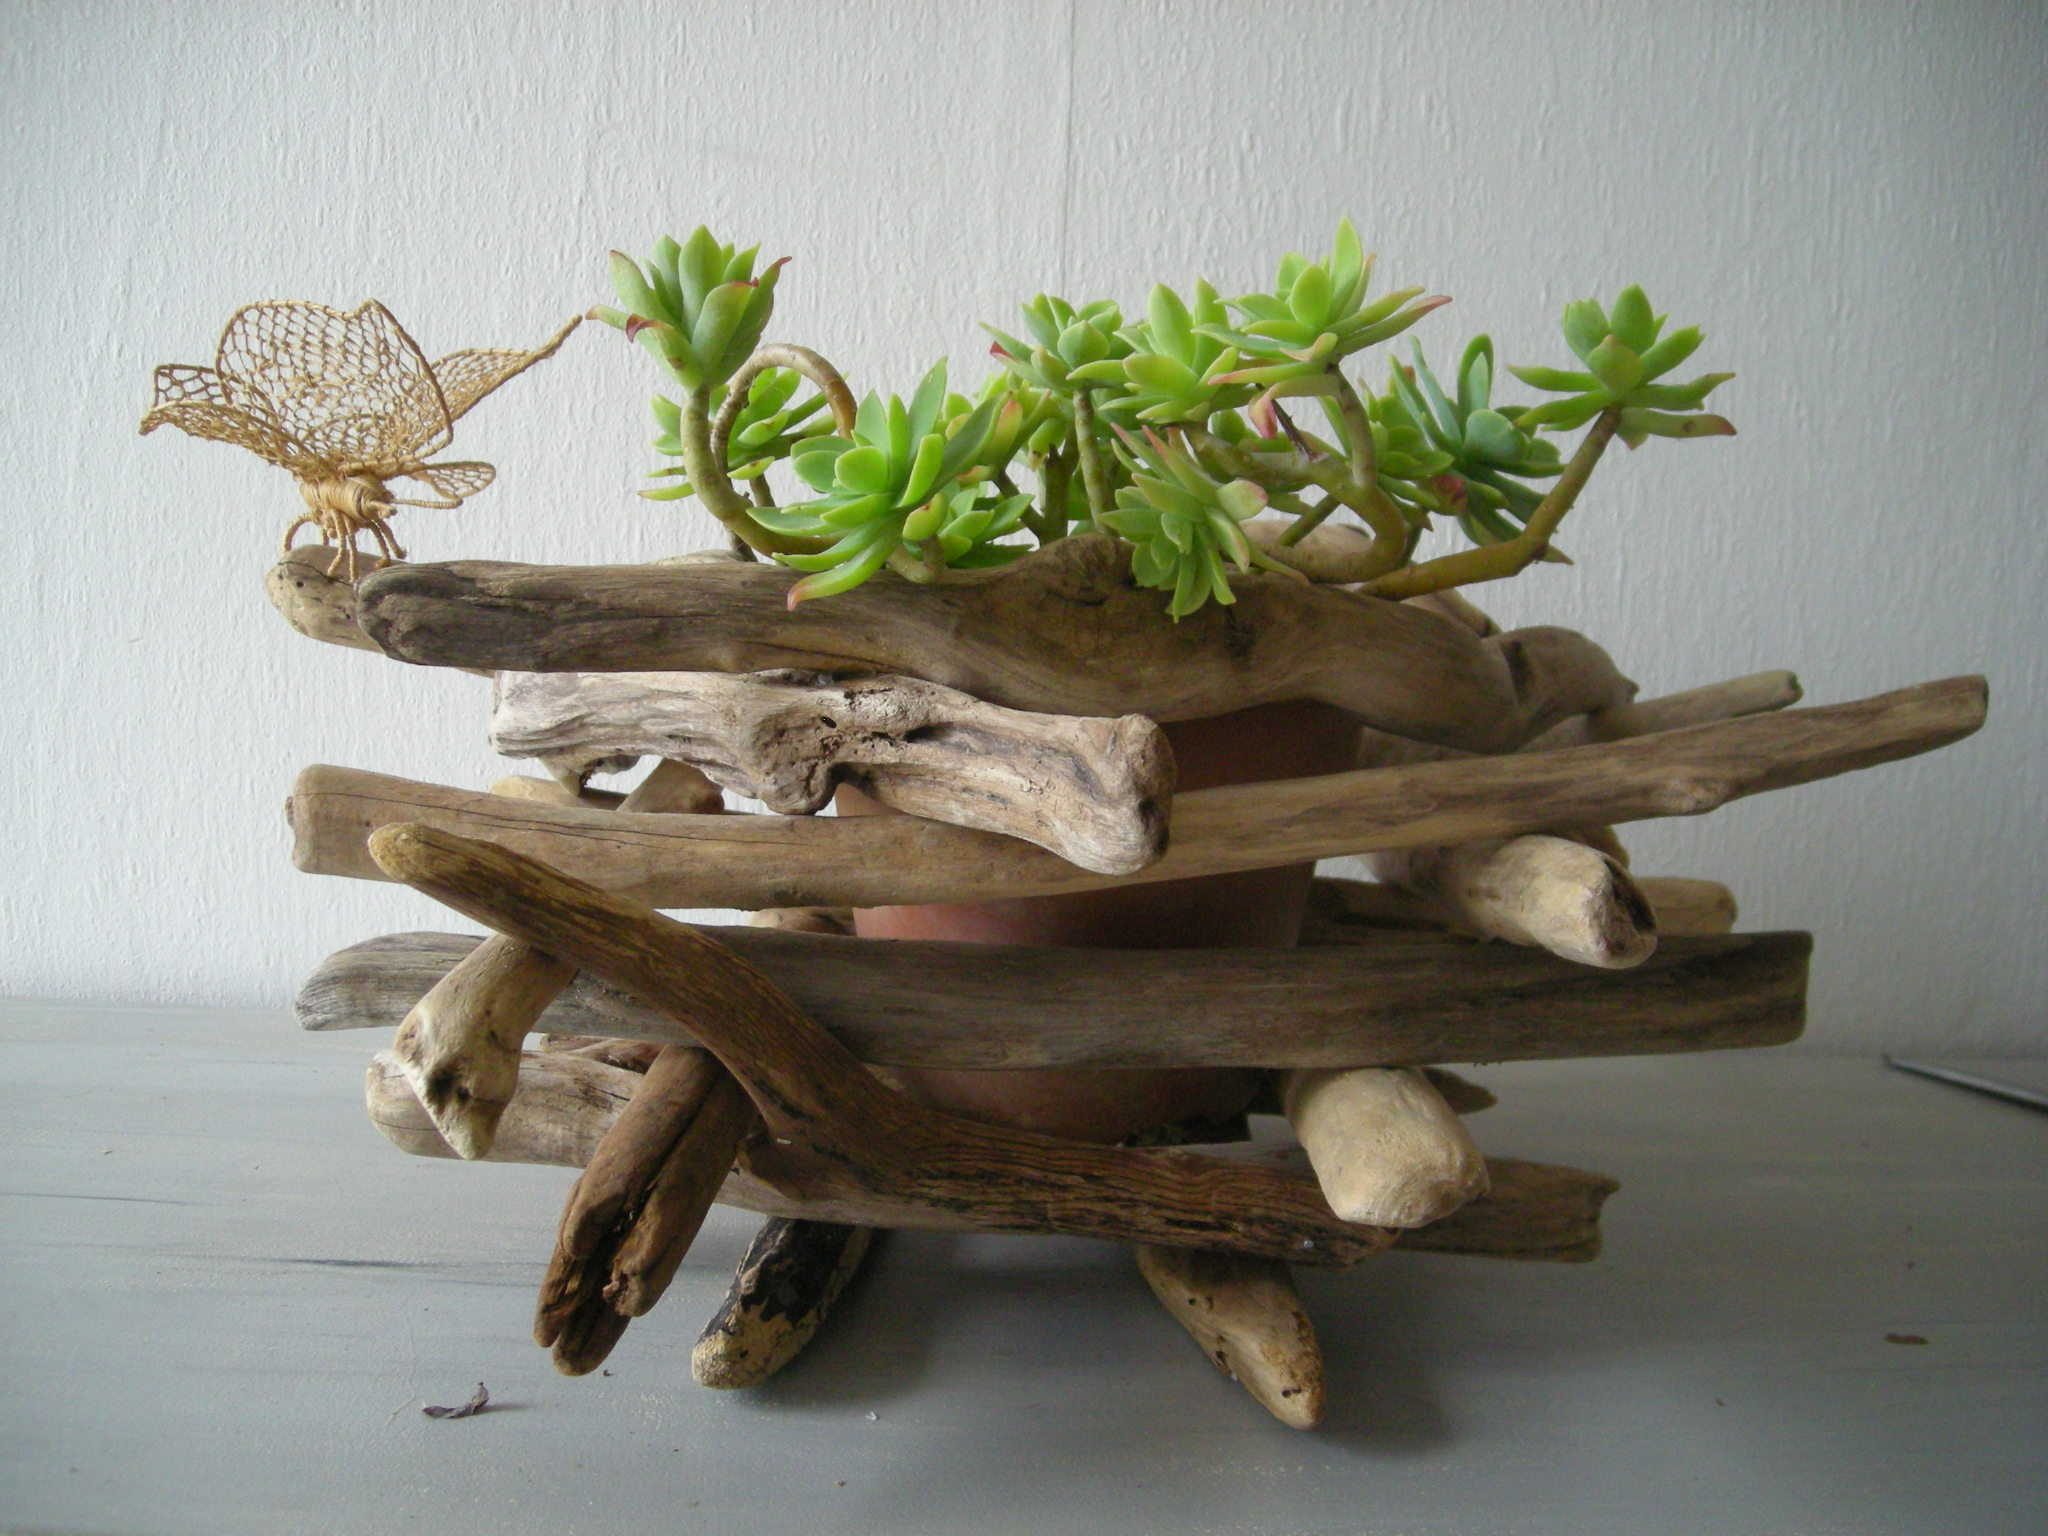 Diy un cache pot nature for Idee deco avec du bois flotte